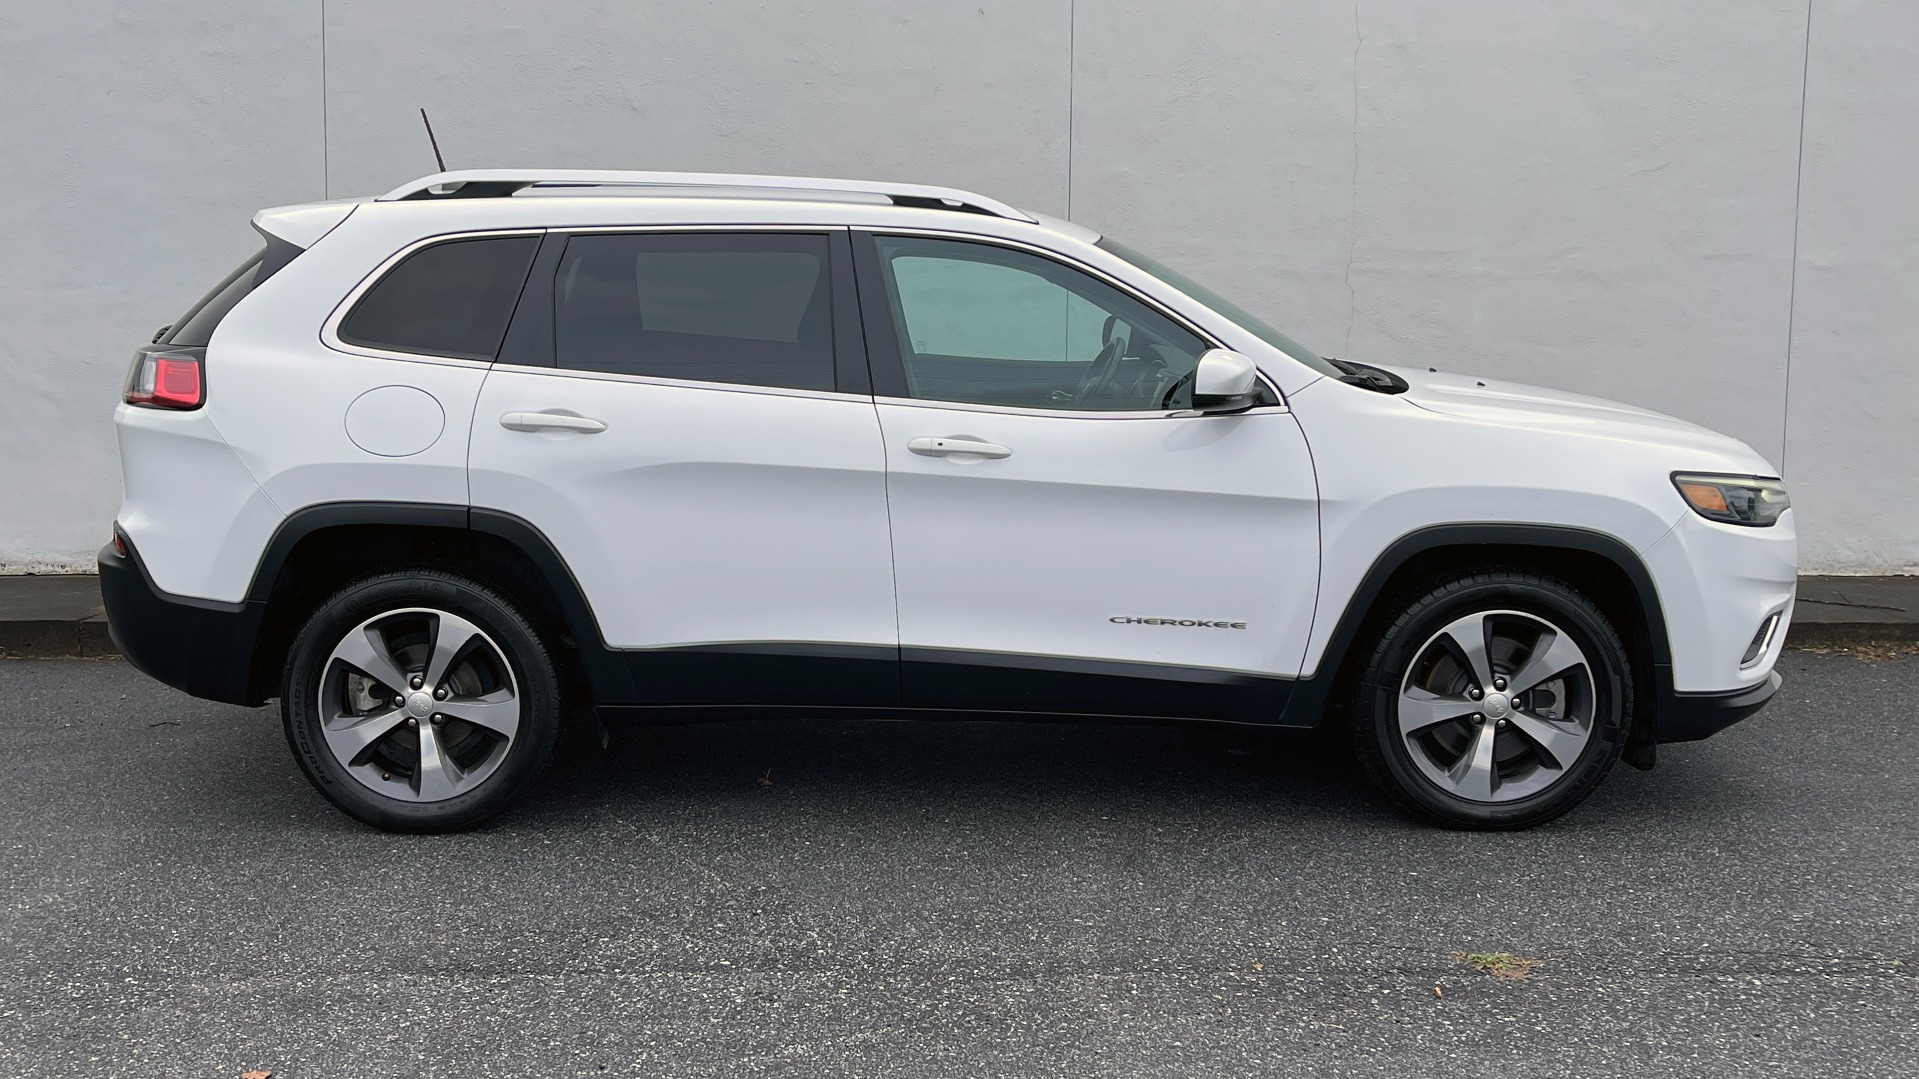 Used 2019 Jeep CHEROKEE LIMITED 2.4L / FWD / APPLE CARPLAY / KEYLESS-GO / REARVIEW for sale $24,395 at Formula Imports in Charlotte NC 28227 5